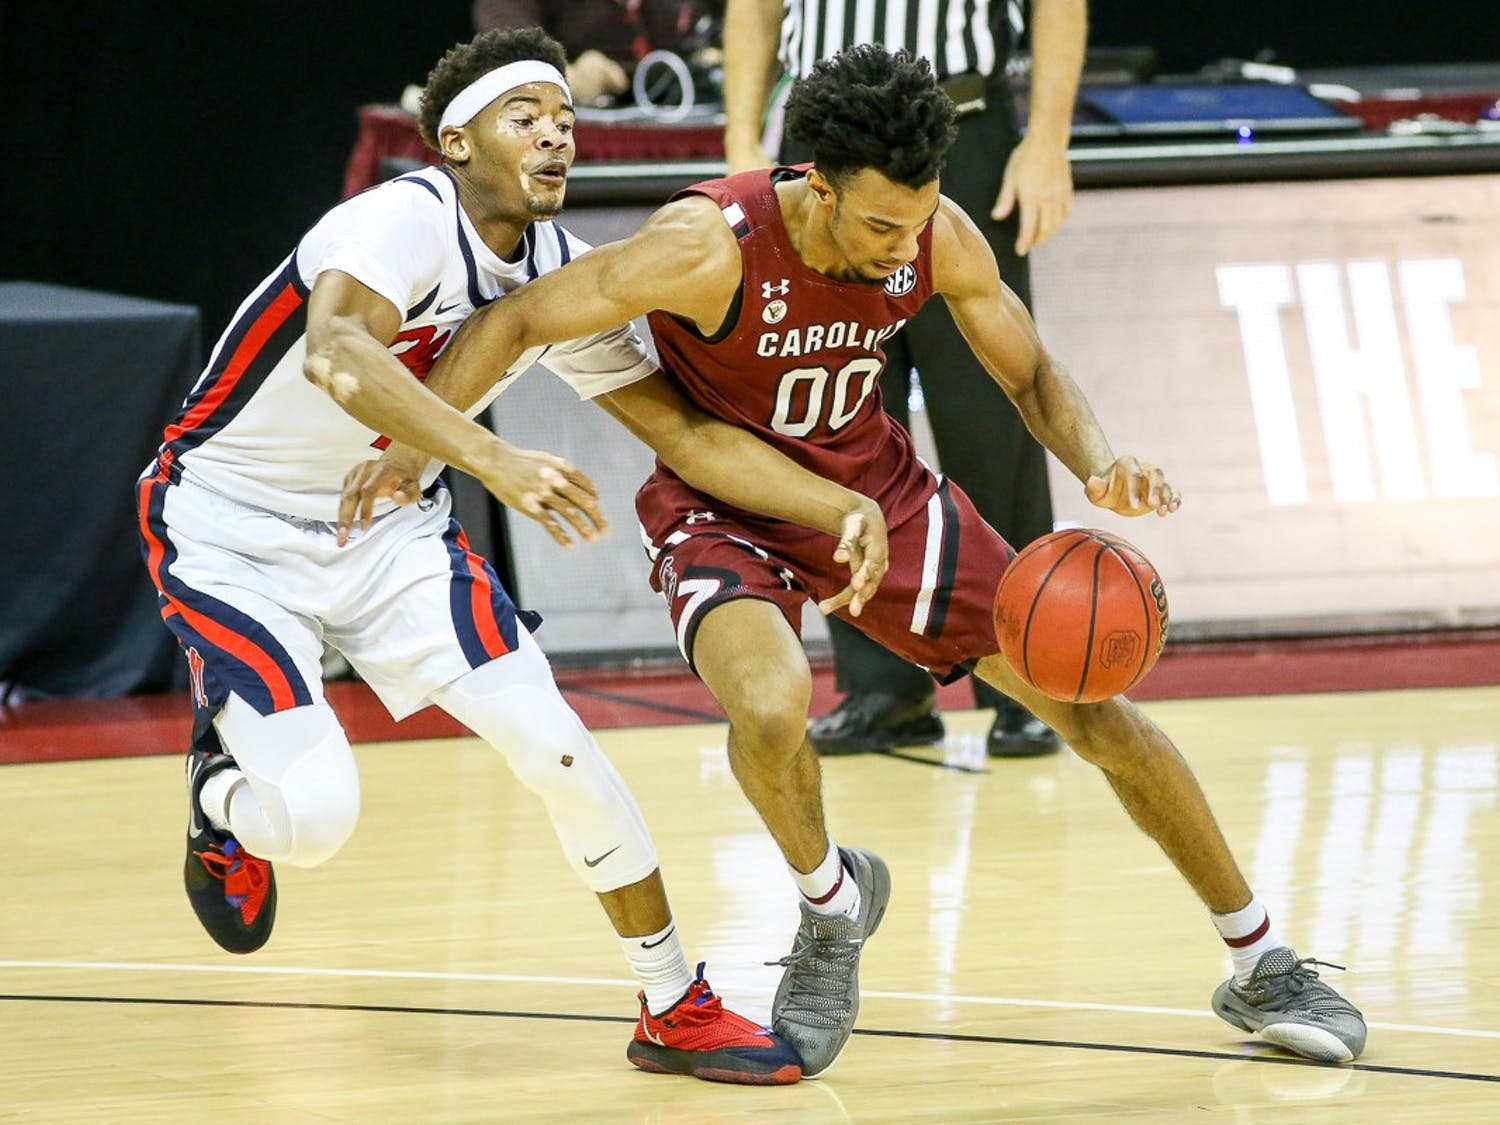 Junior guard A.J. Lawson dribbles the ball during the Ole Miss game. South Carolina lost 81-74.